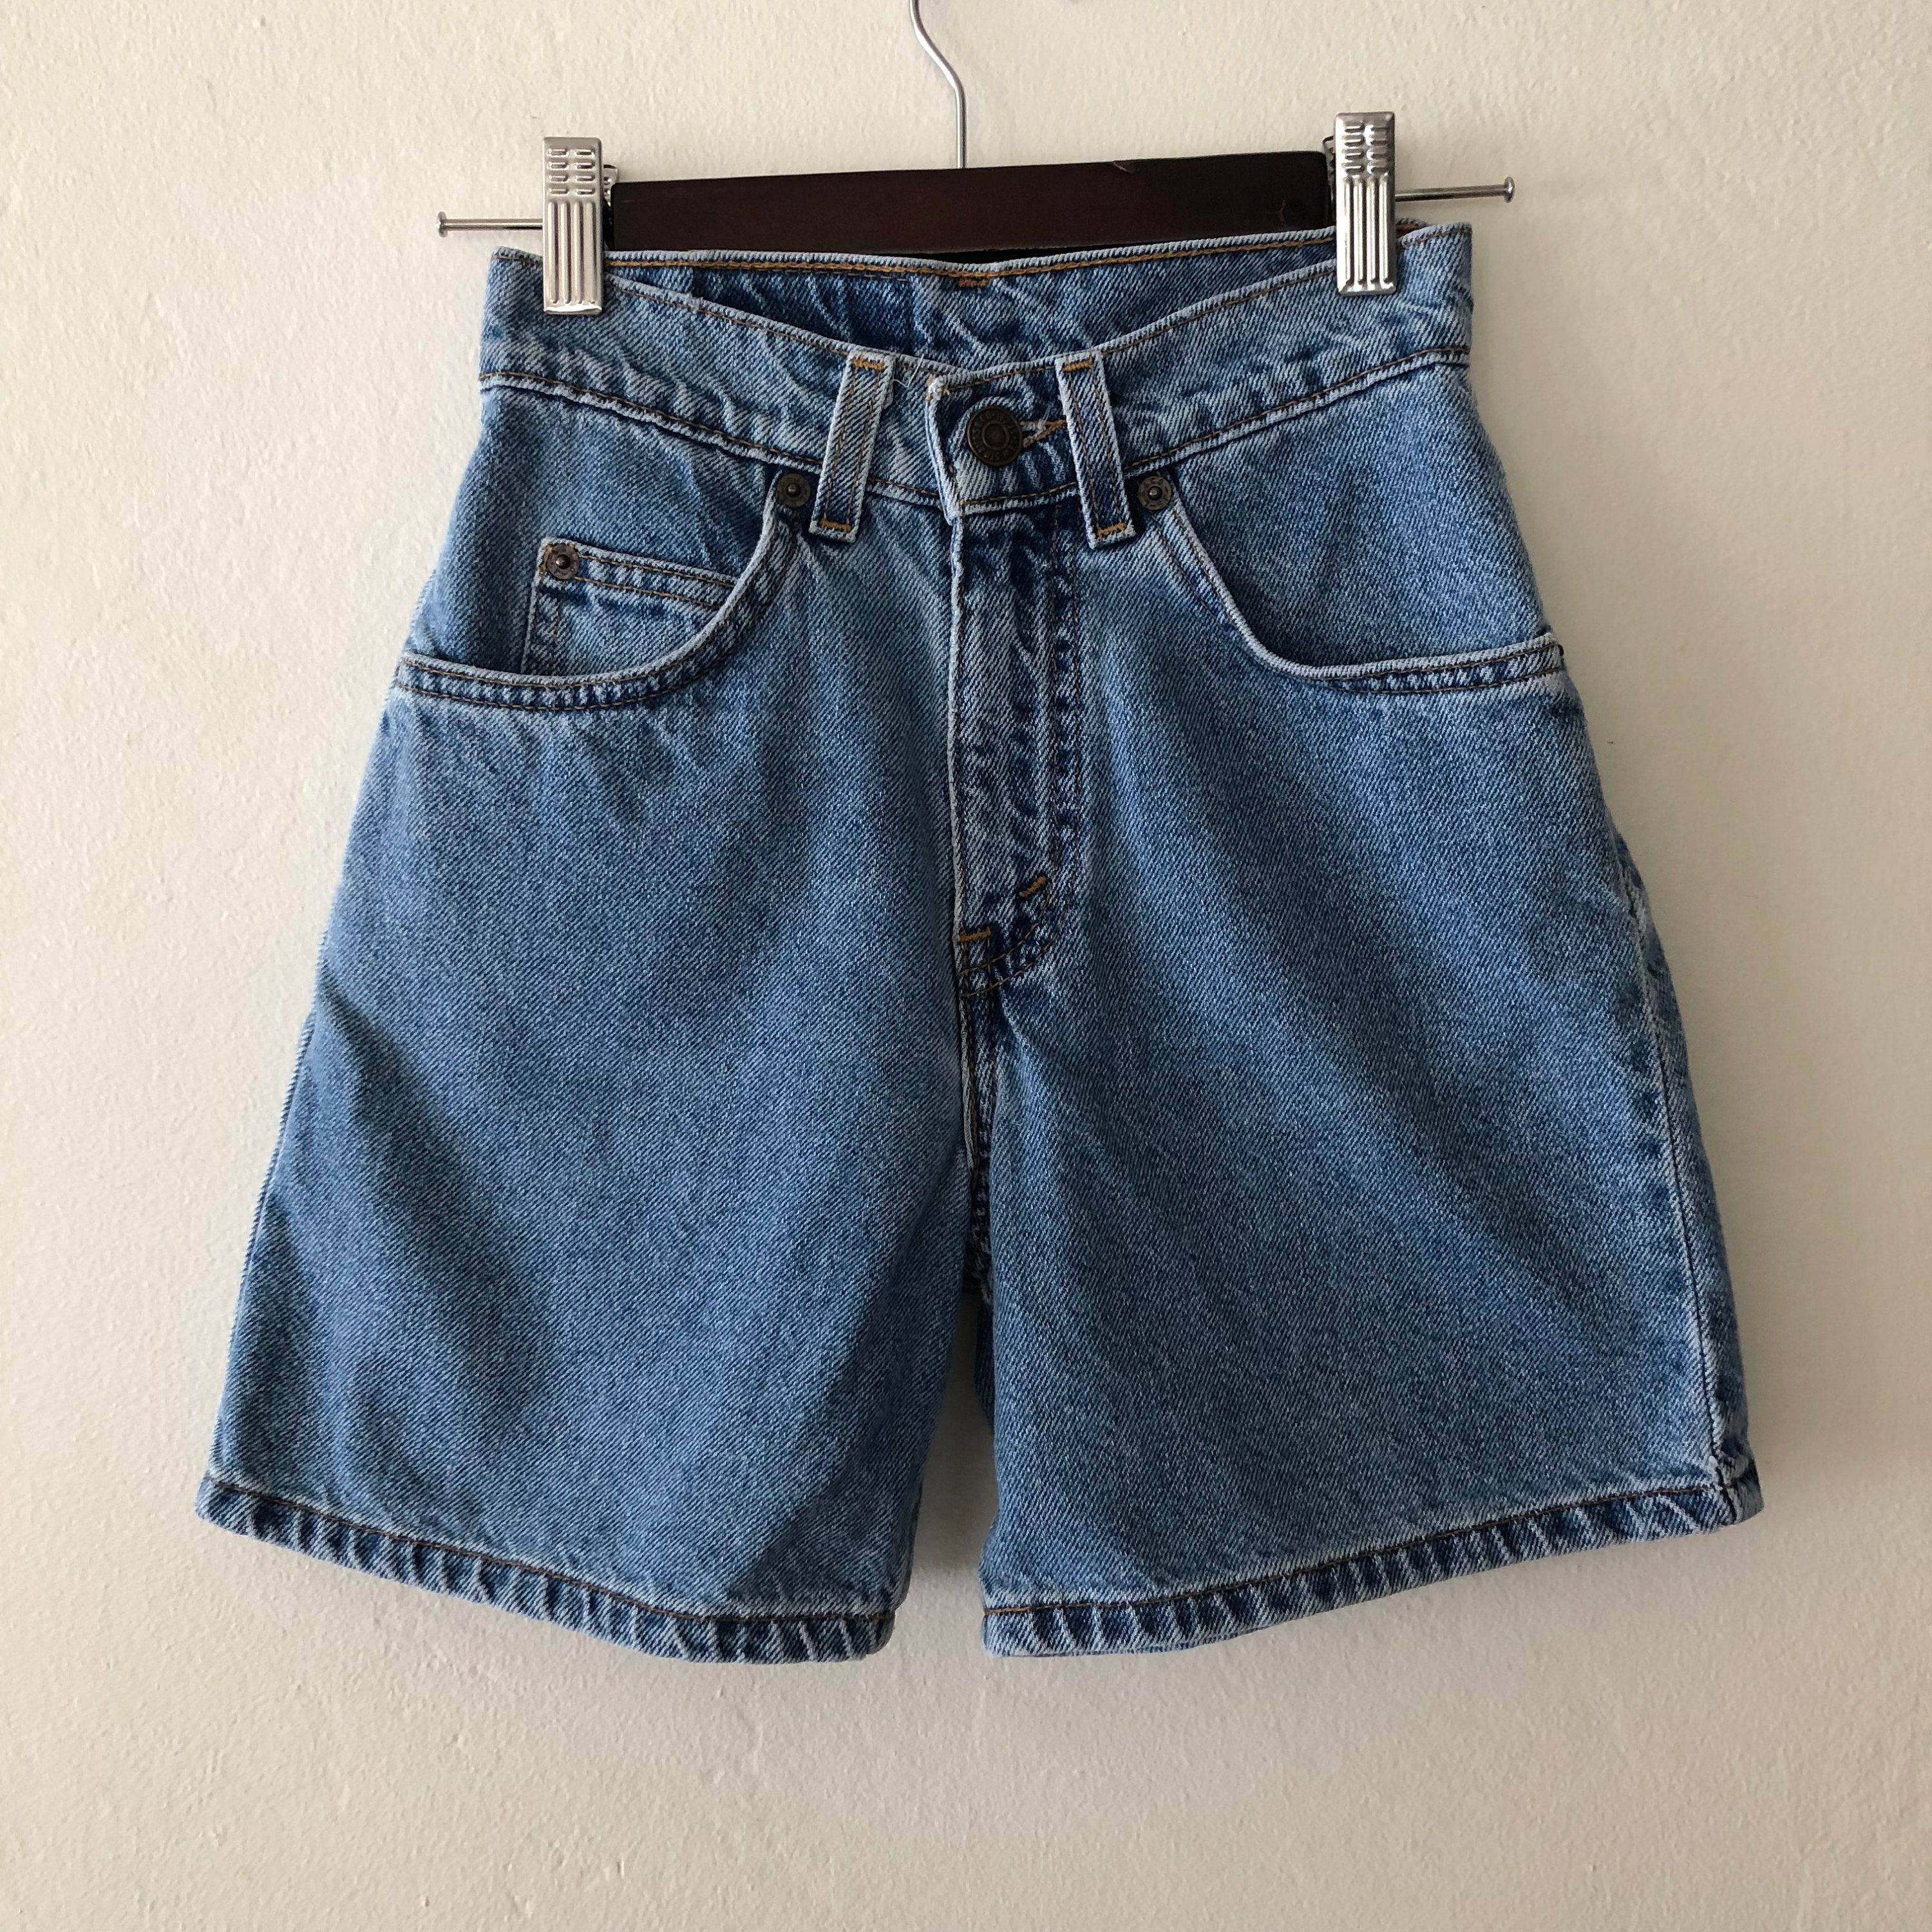 67ed0b94 Vintage Kids High Waist Orange Tab Levis Shorts, Vintage Girls High Waist  Shorts, Vintage